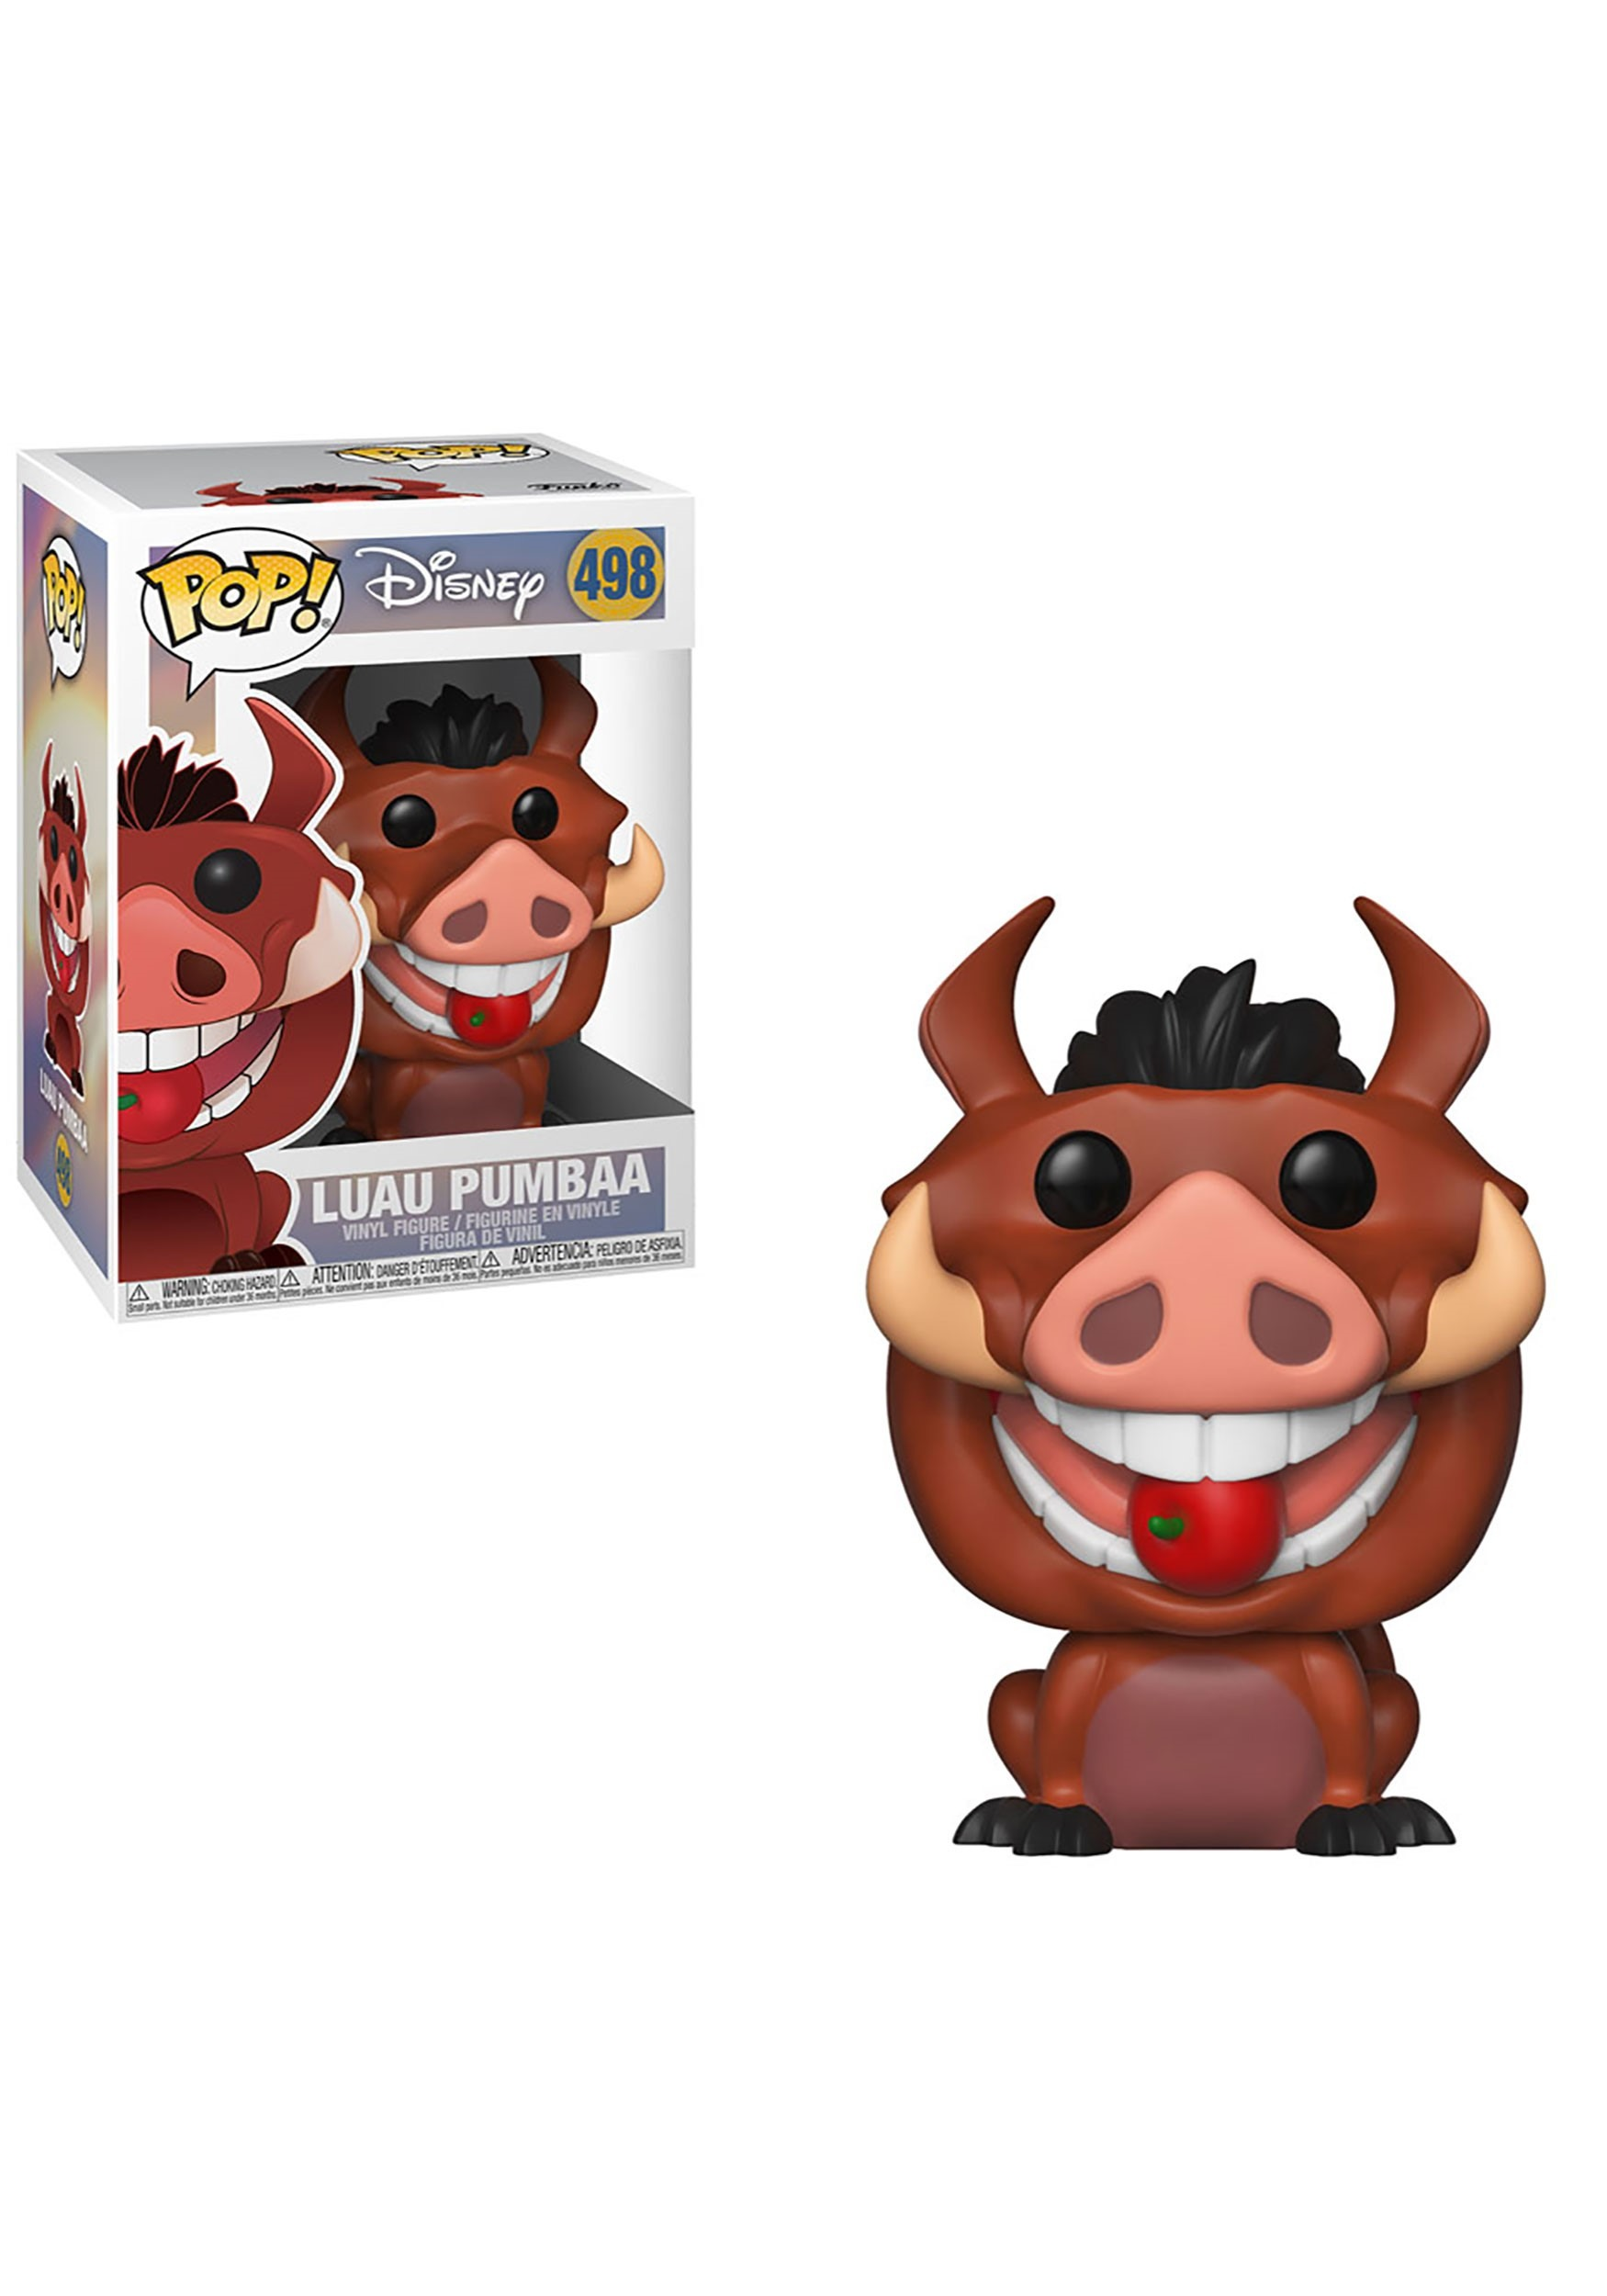 Pop! Disney: Luau Pumbaa- Lion King